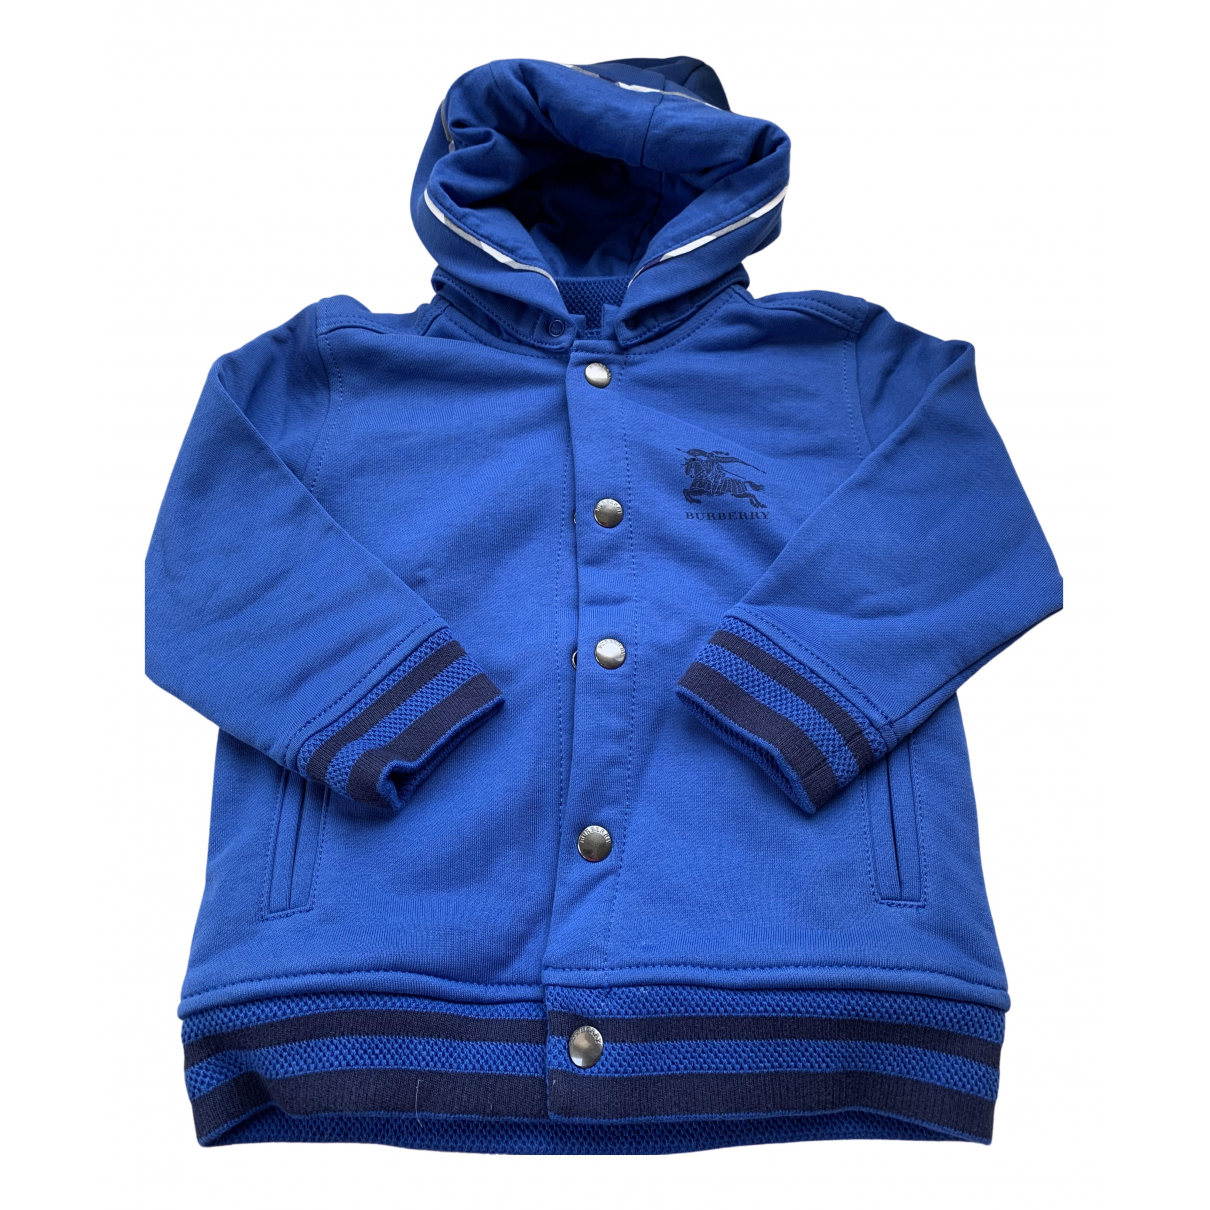 Burberry \N Blue Cotton jacket & coat for Kids 3 years - up to 98cm FR